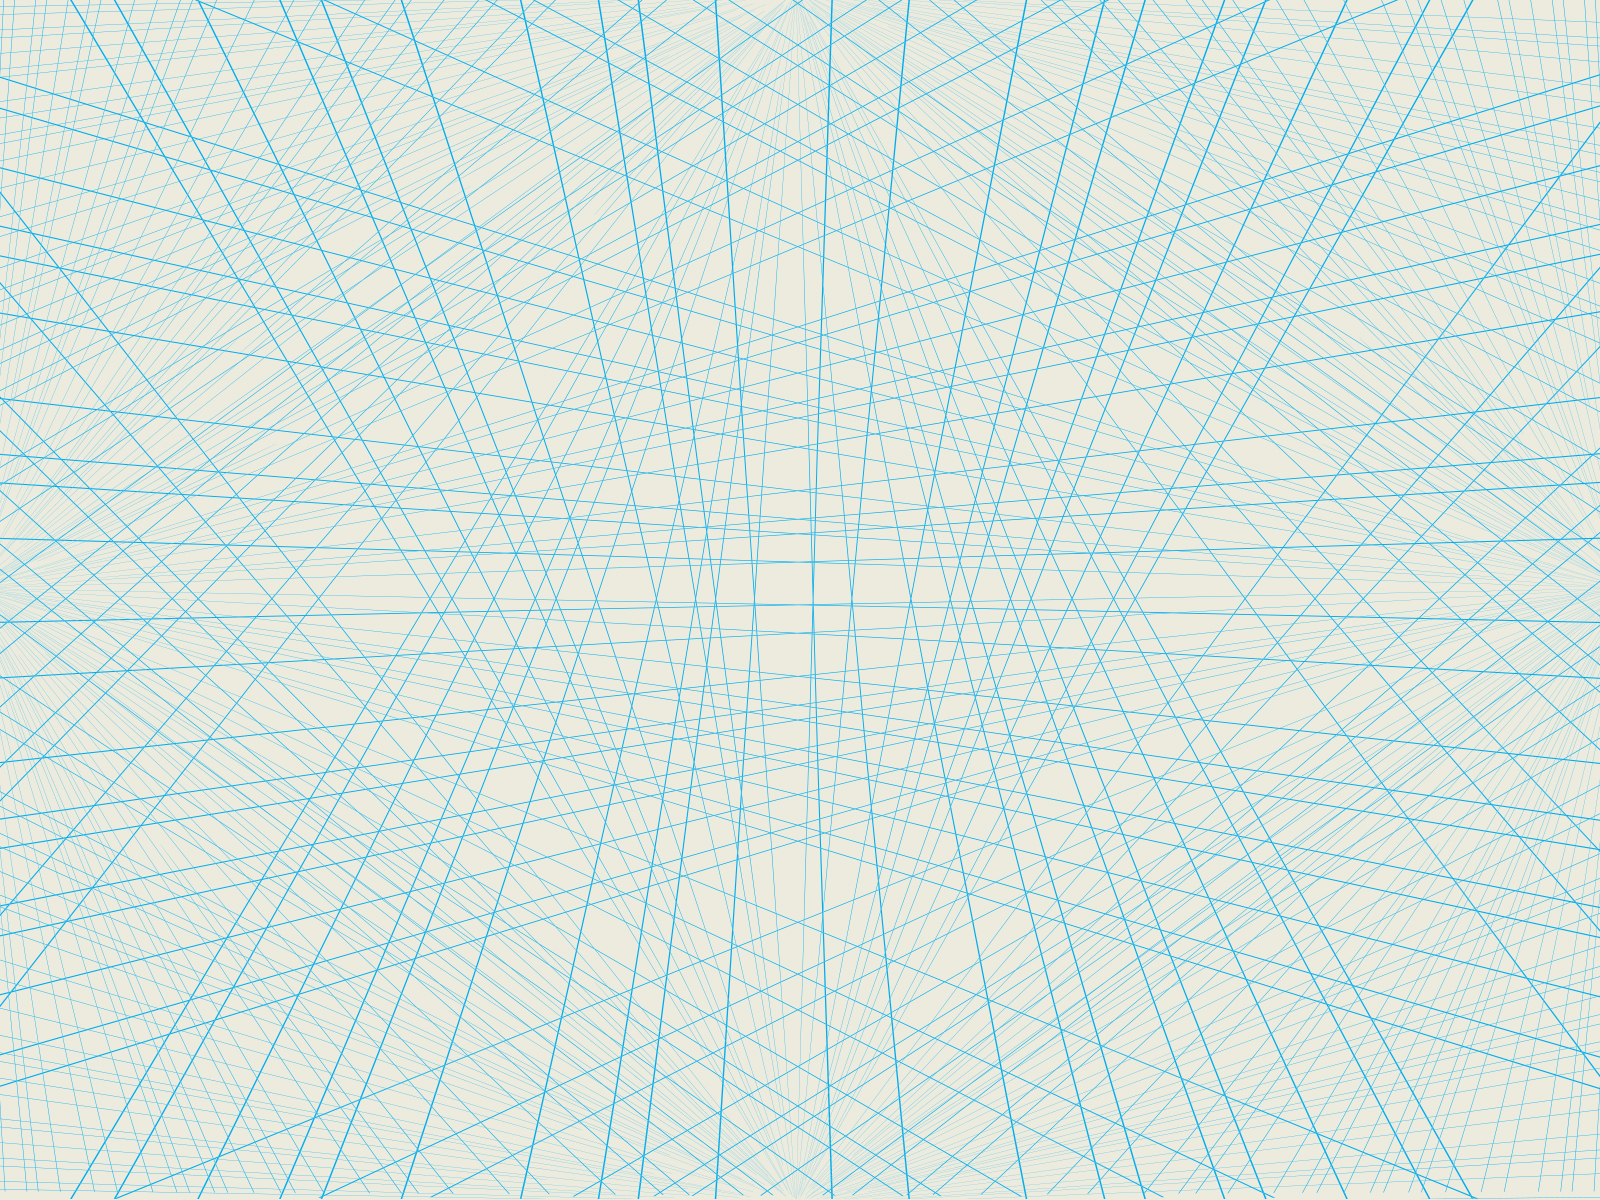 Gangster Wallpaper 3d Crossed Lines Backgrounds Abstract Blue Templates